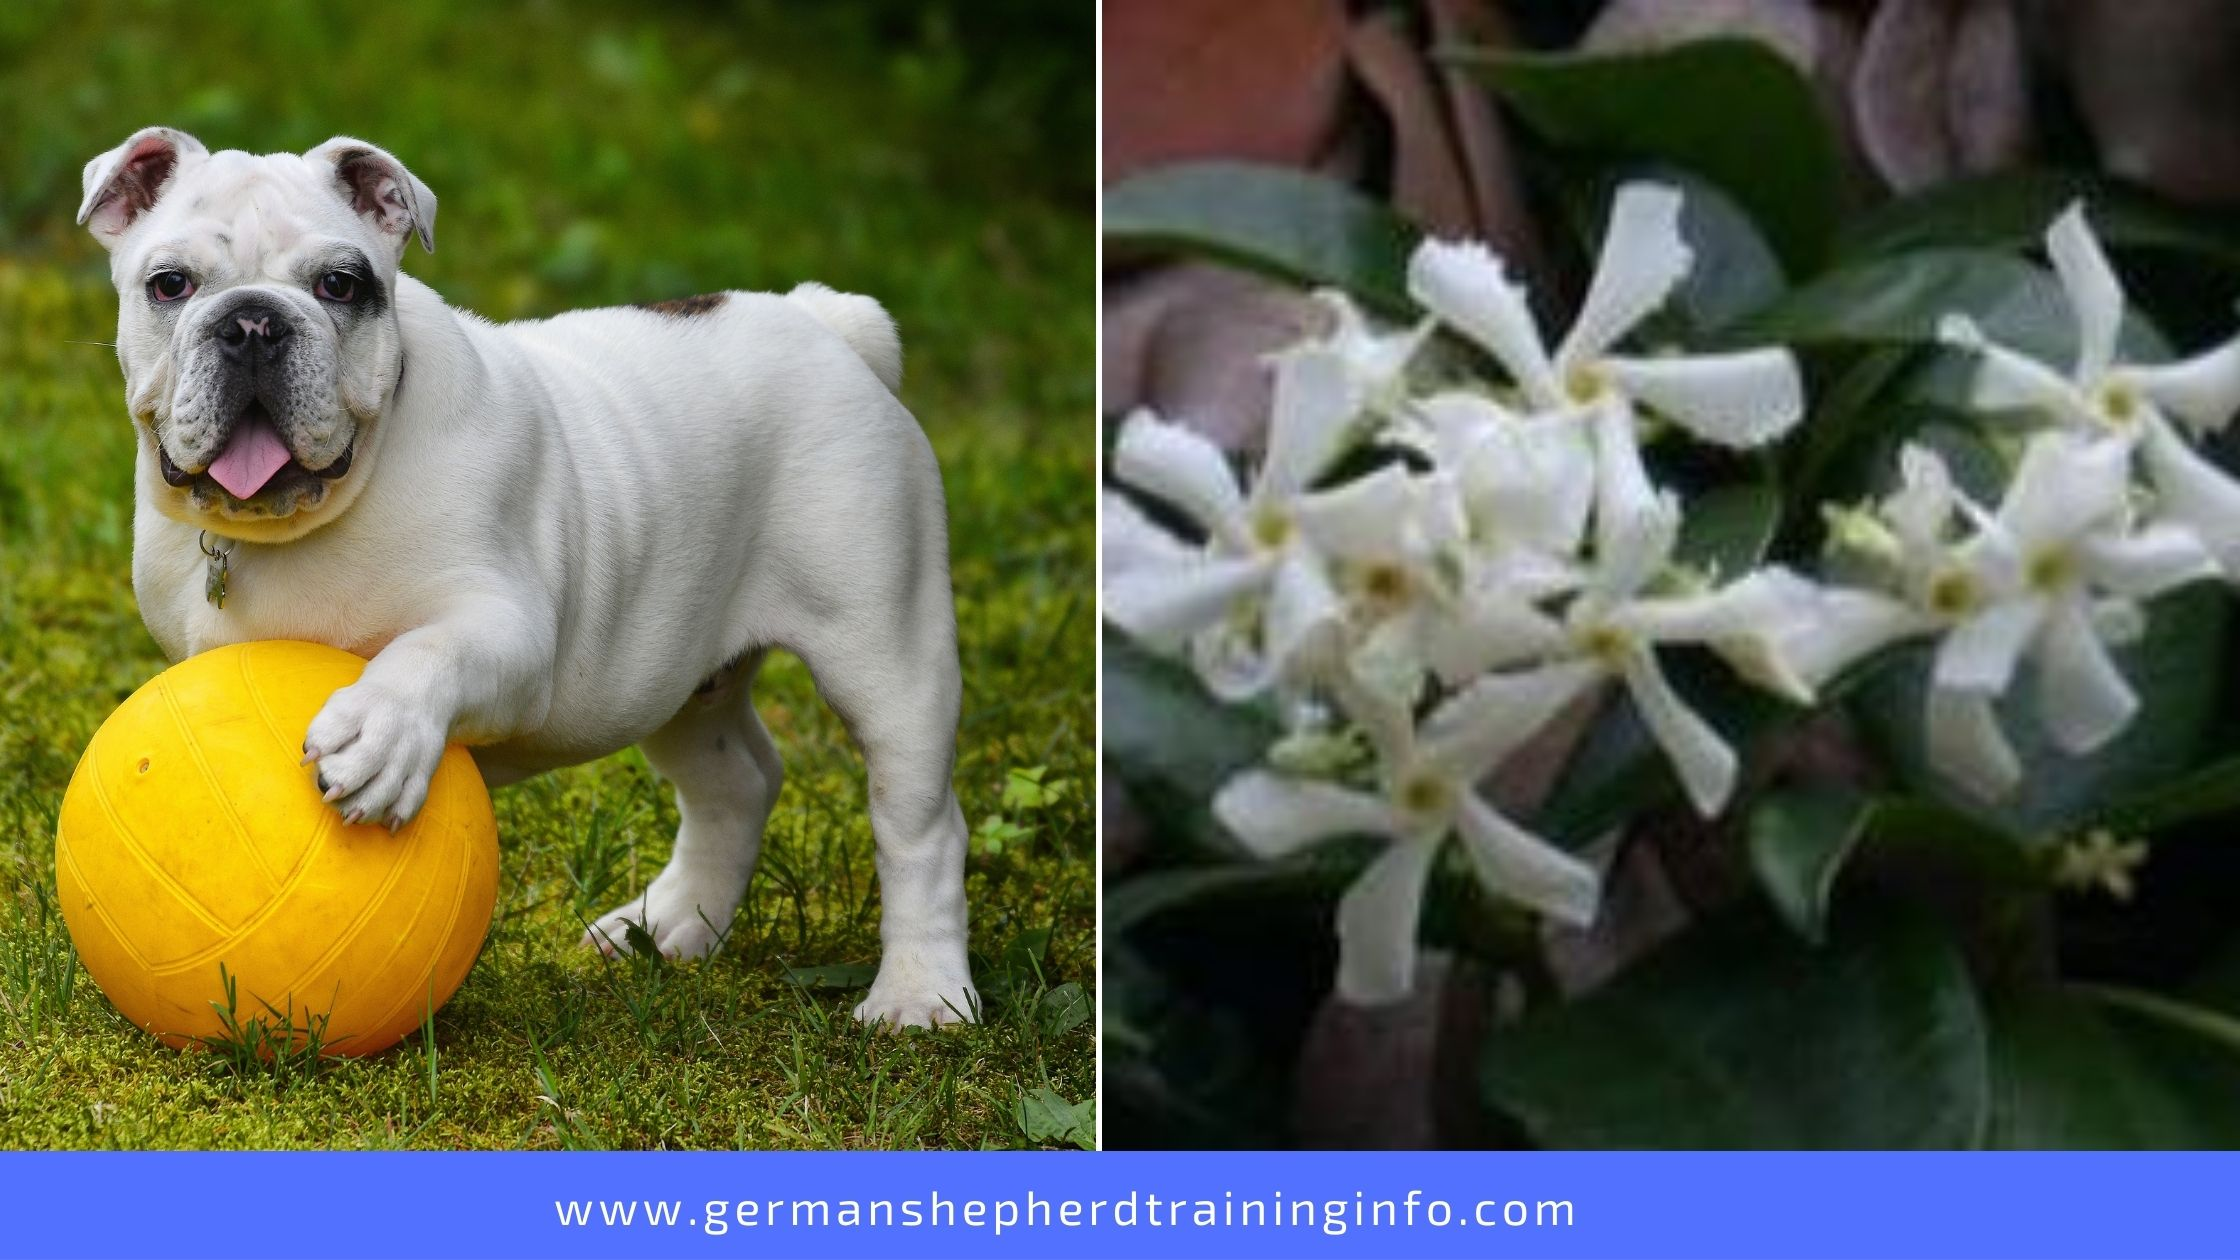 Is Star Jasmine Poisonous To Dogs?